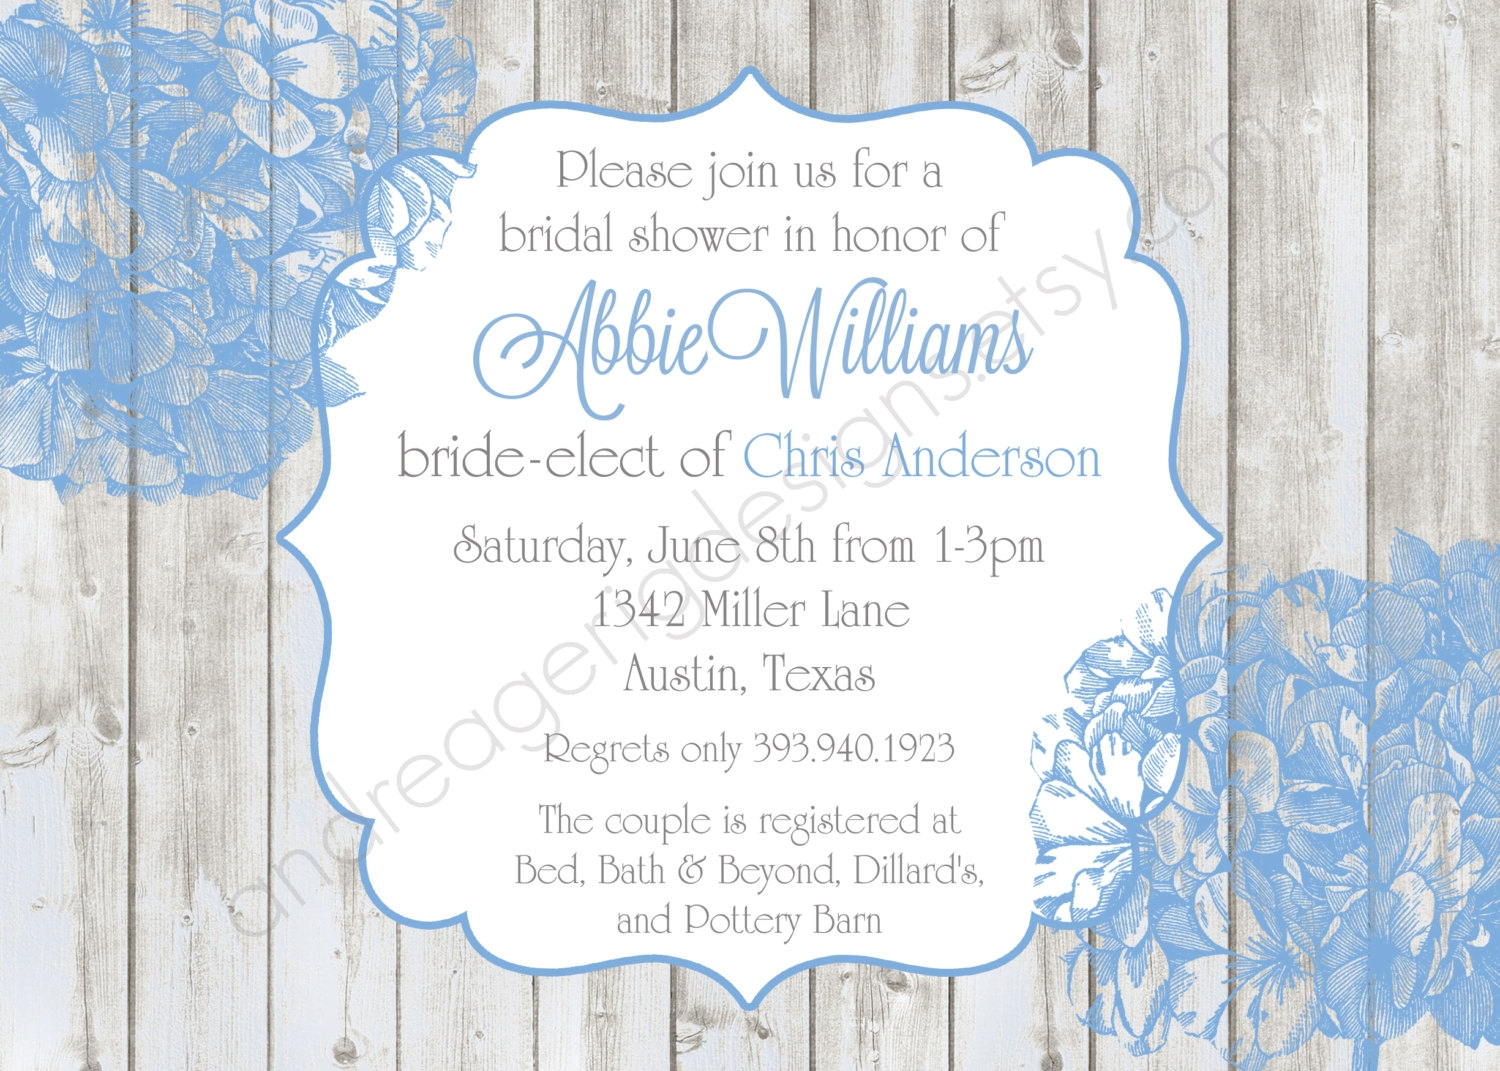 009 Free Bridal Shower Invitations Cool Printable Colouring To - Free Printable Bridal Shower Invitations Templates